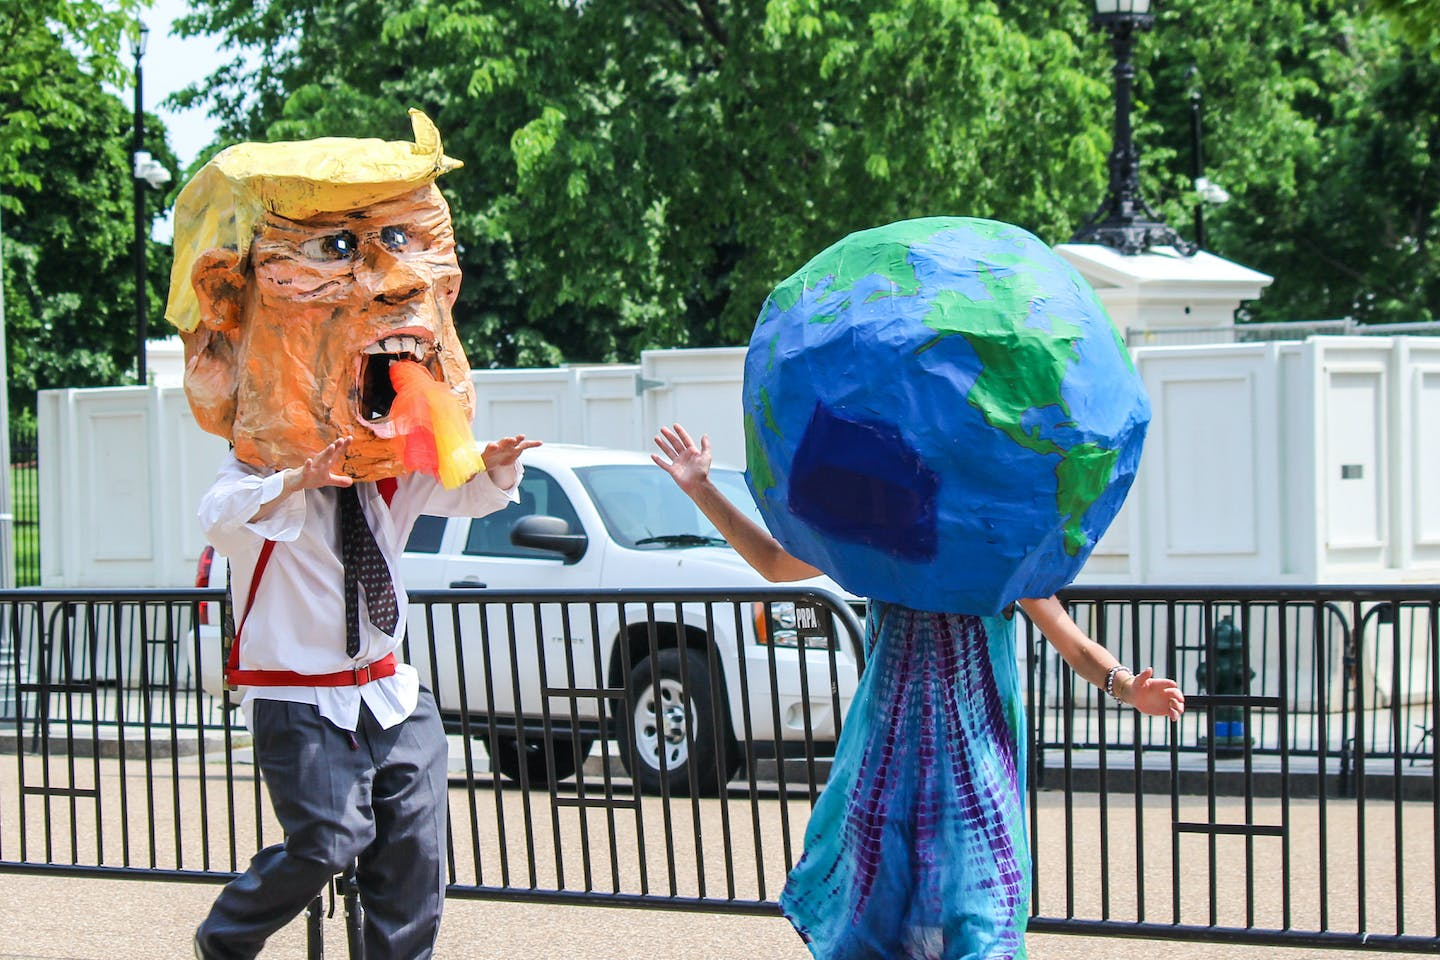 Fire-breathing Trump and the planet